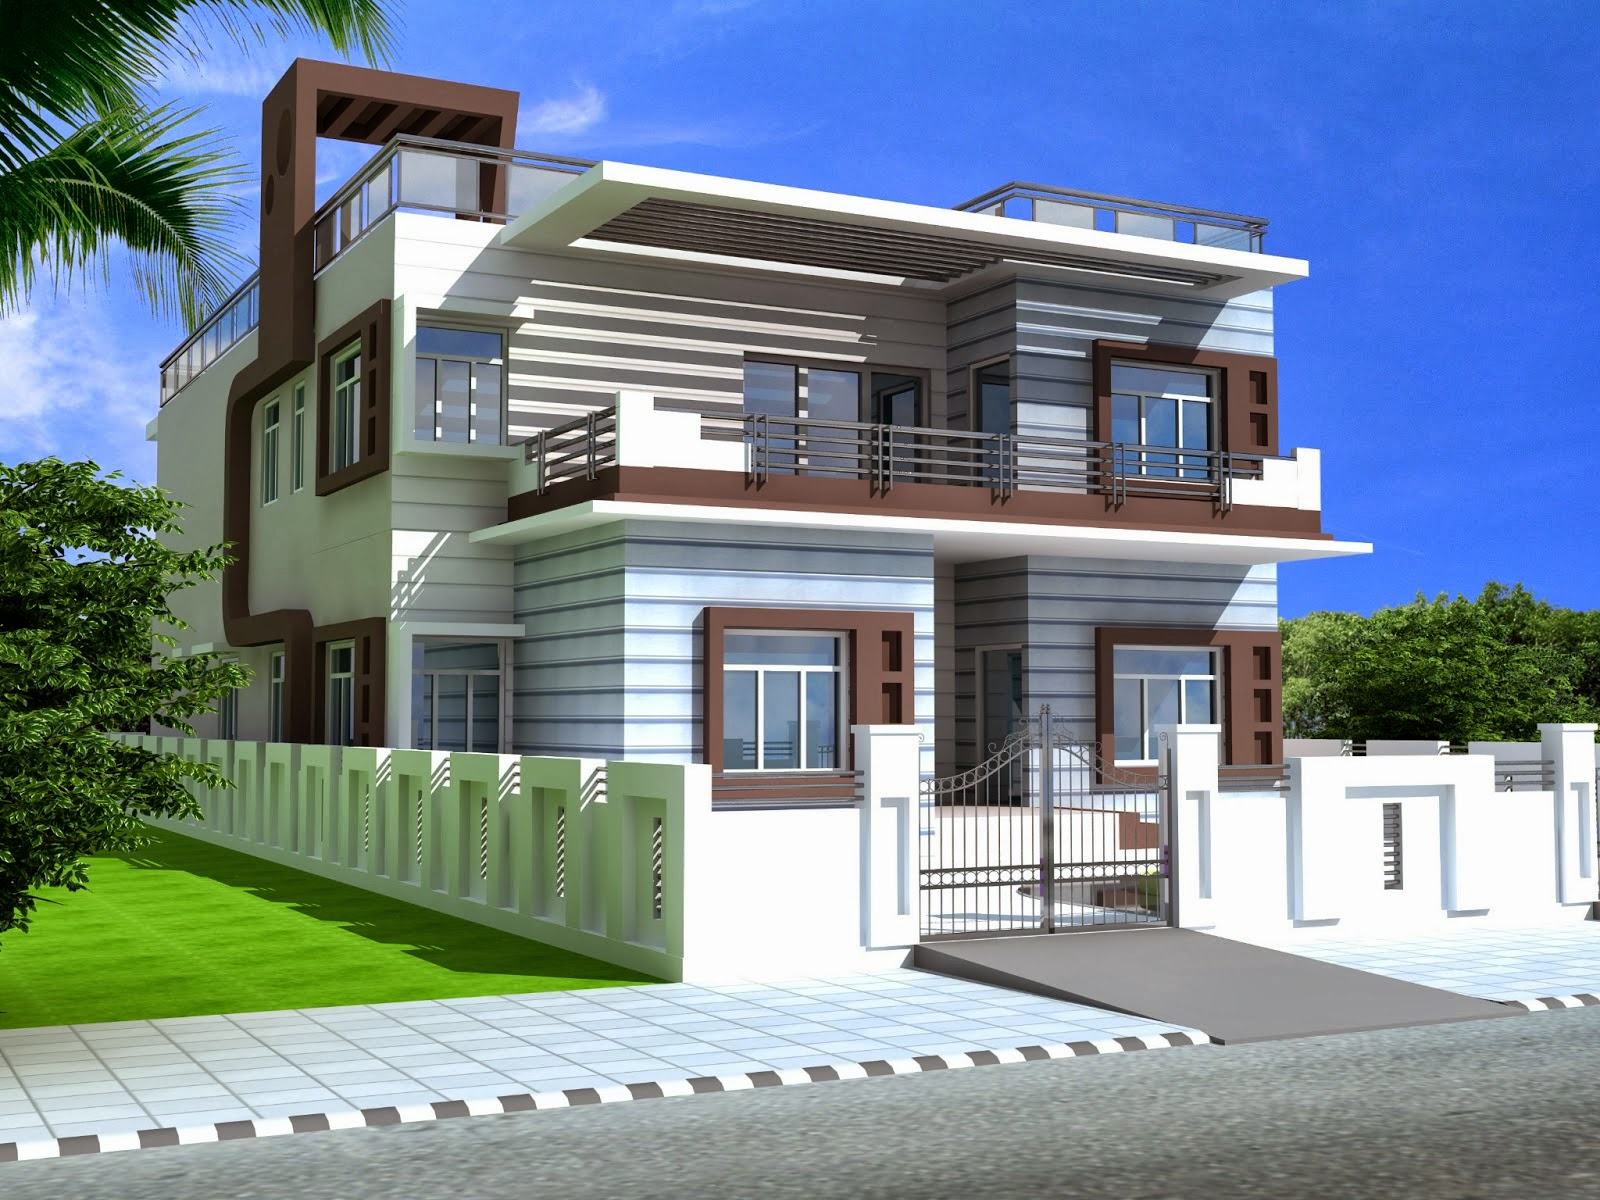 Foundation dezin decor duplex homes 3ds max work Design home free